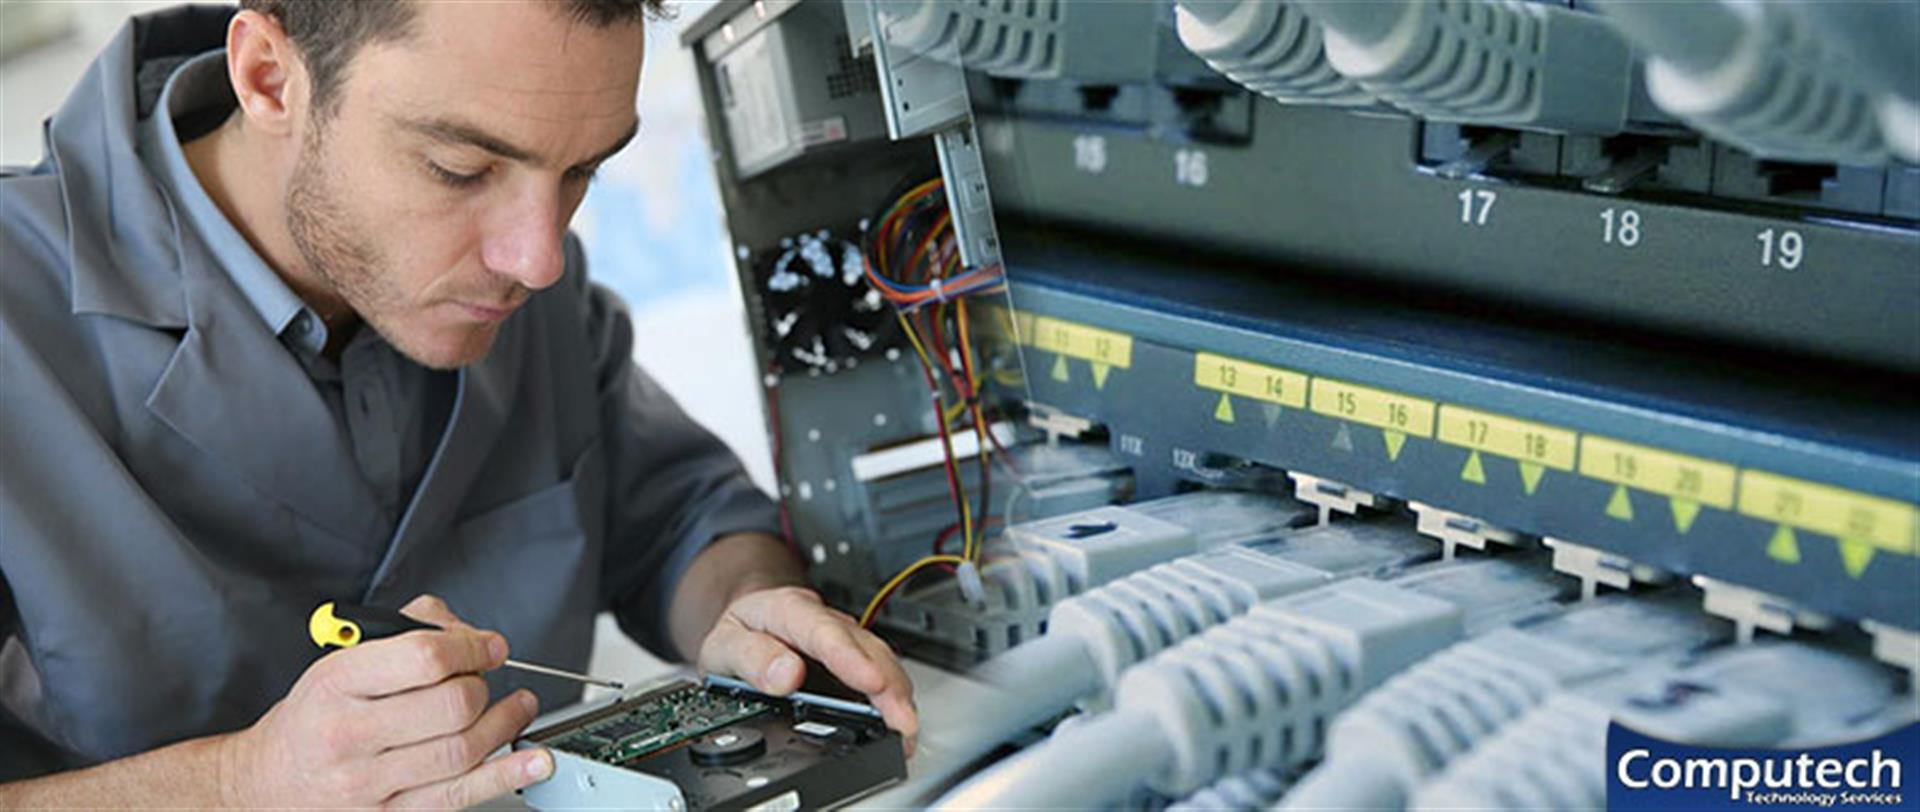 Southside Alabama On Site Computer & Printer Repairs, Network, Voice & Data Low Voltage Cabling Solutions